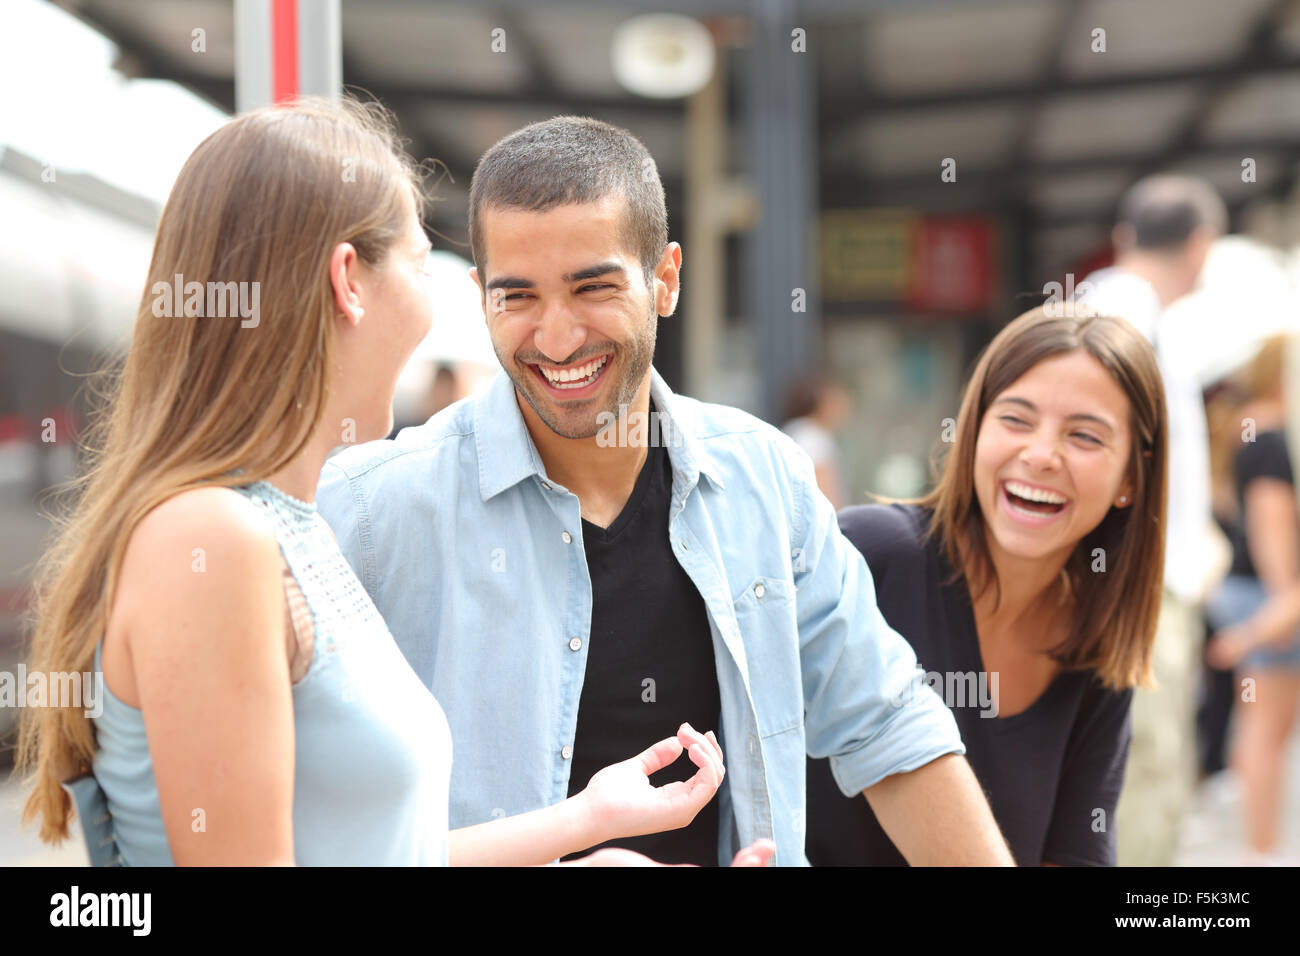 Three friends talking and laughing taking a conversation in a train station - Stock Image